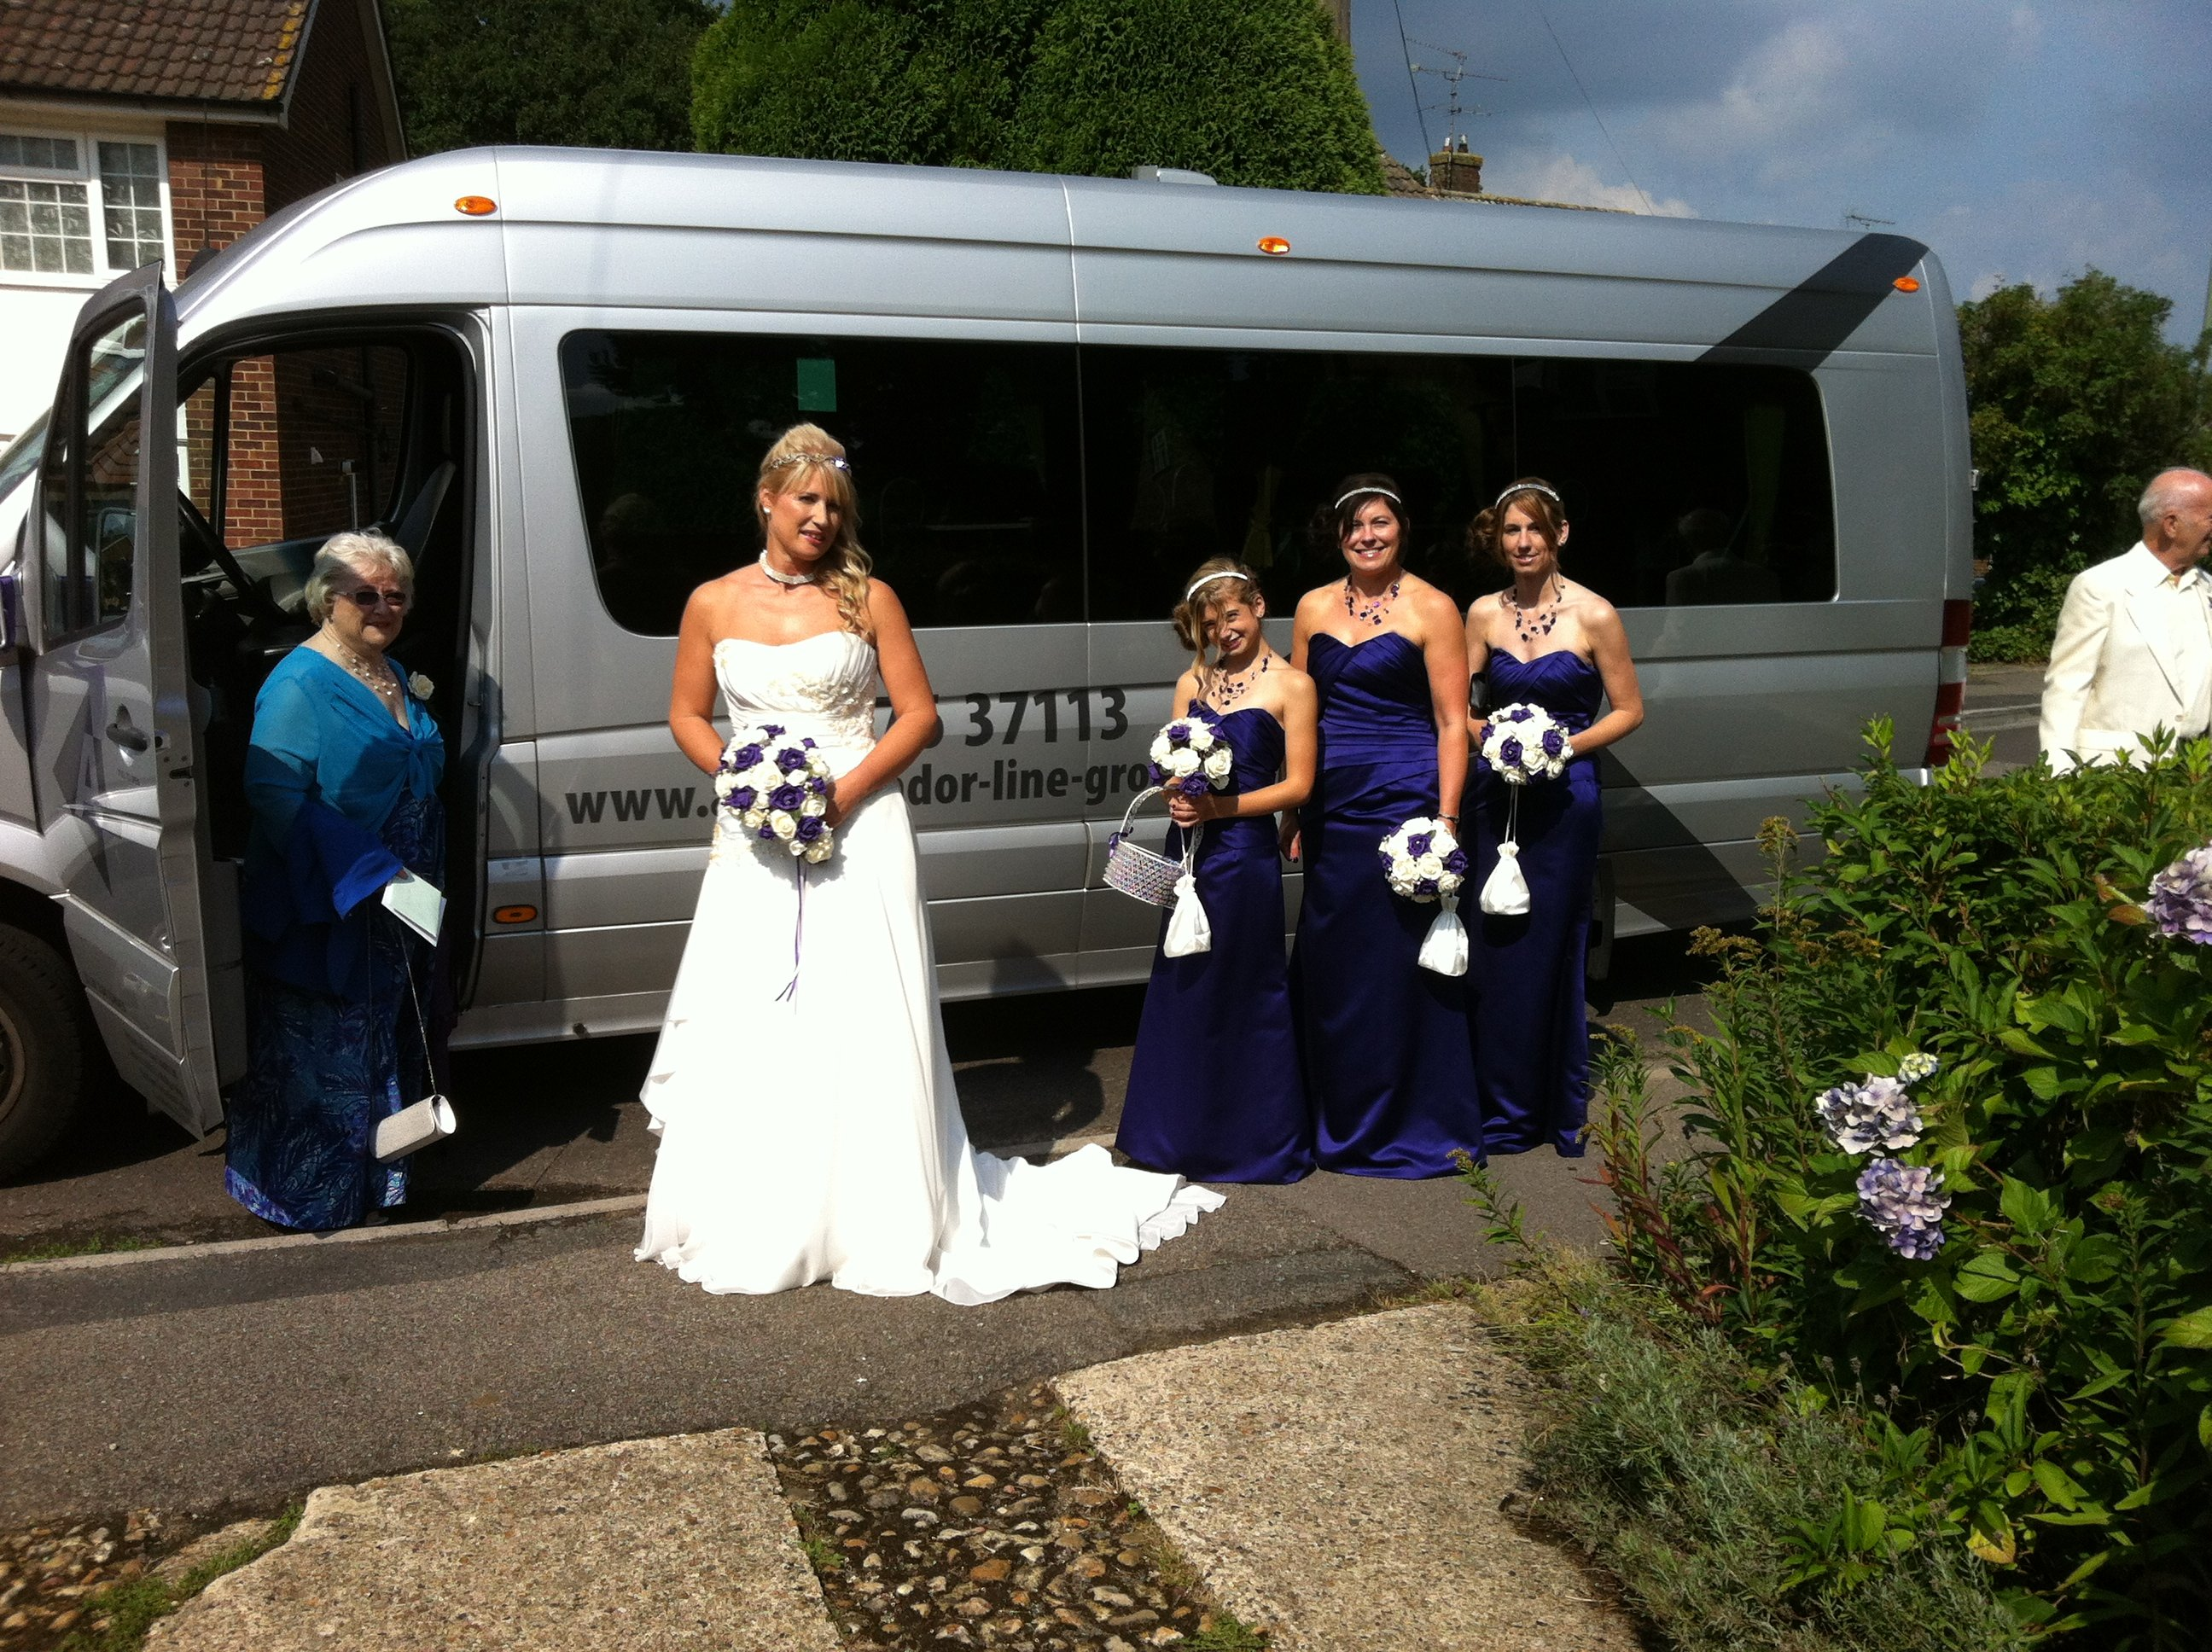 Wedding vehicles